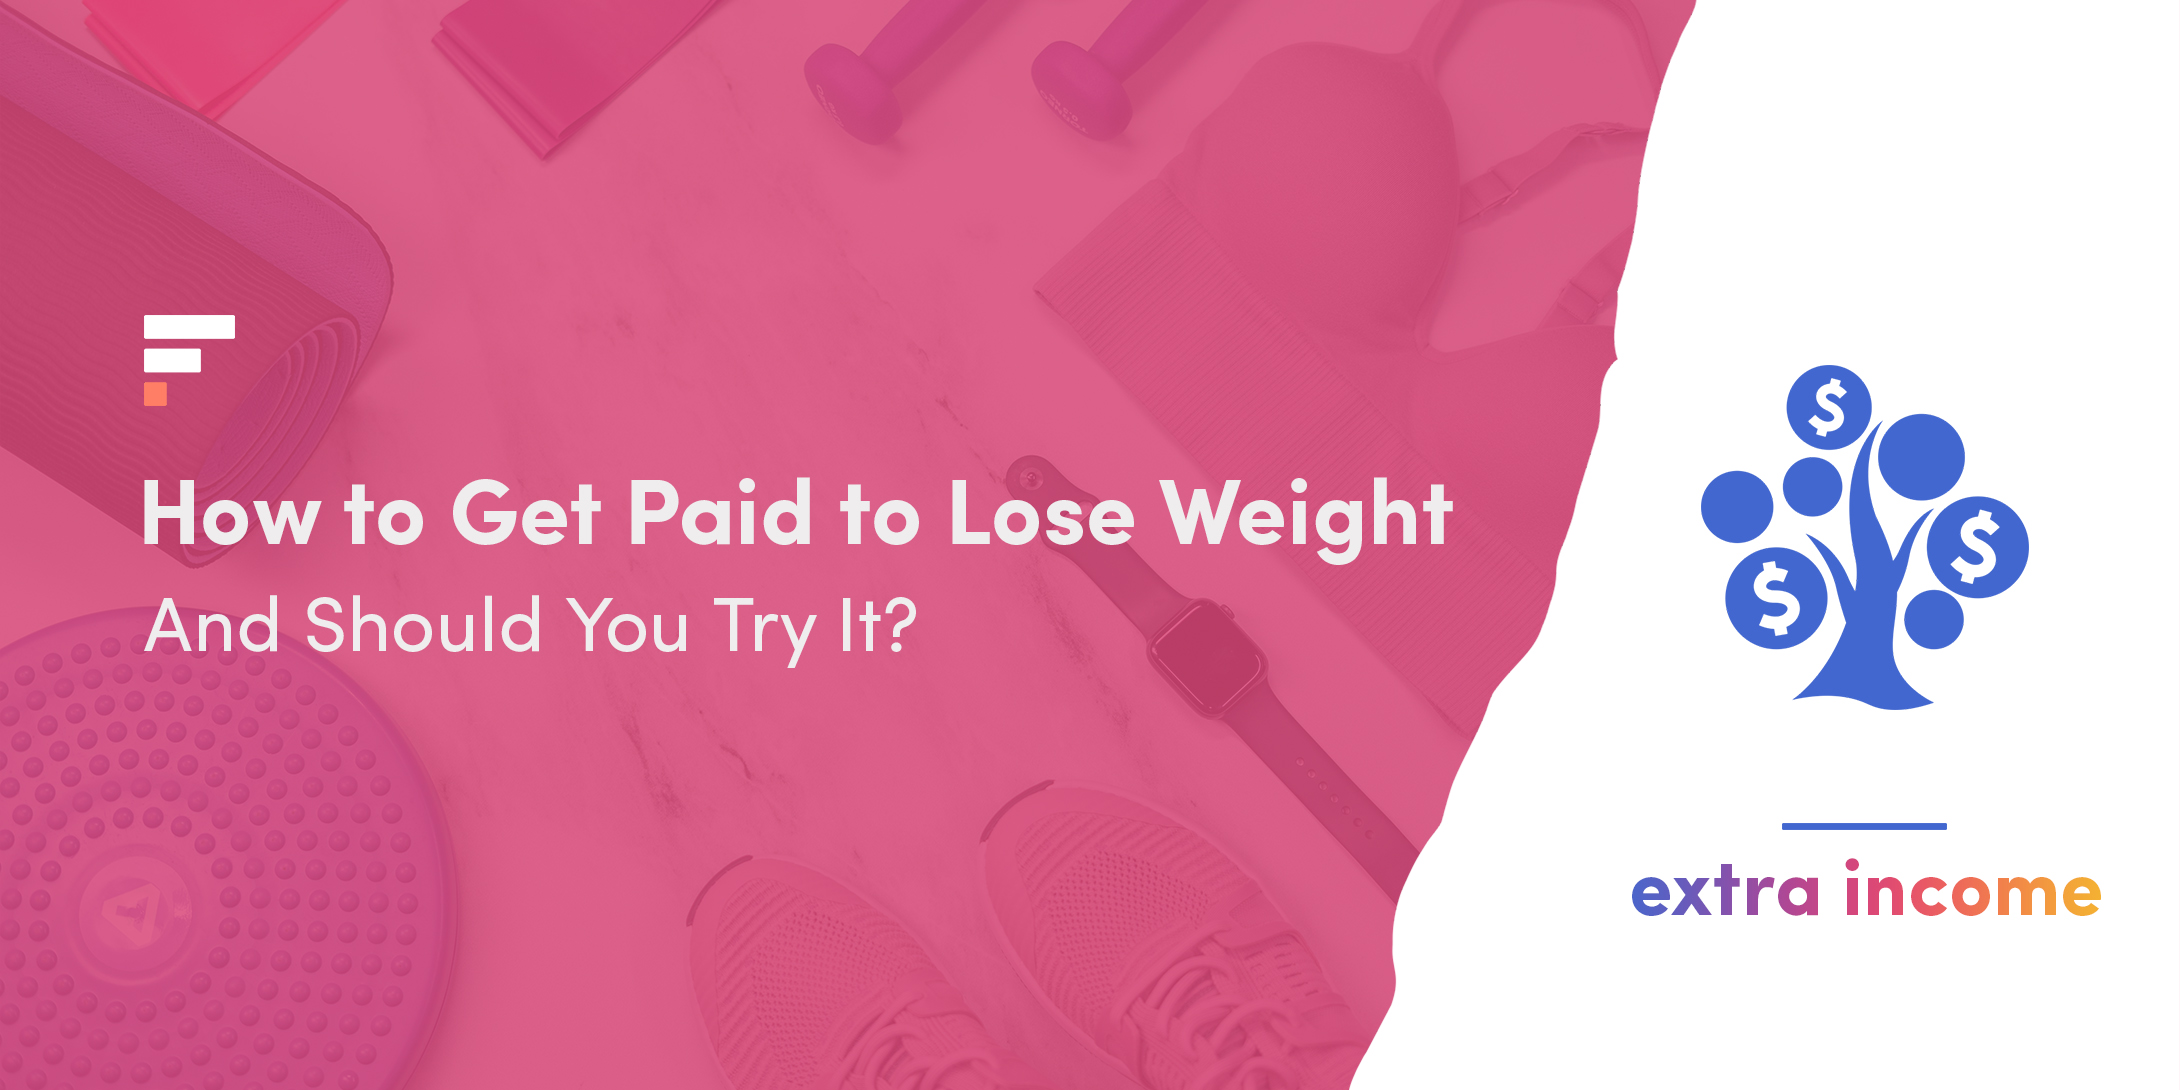 How to get paid to lose weight